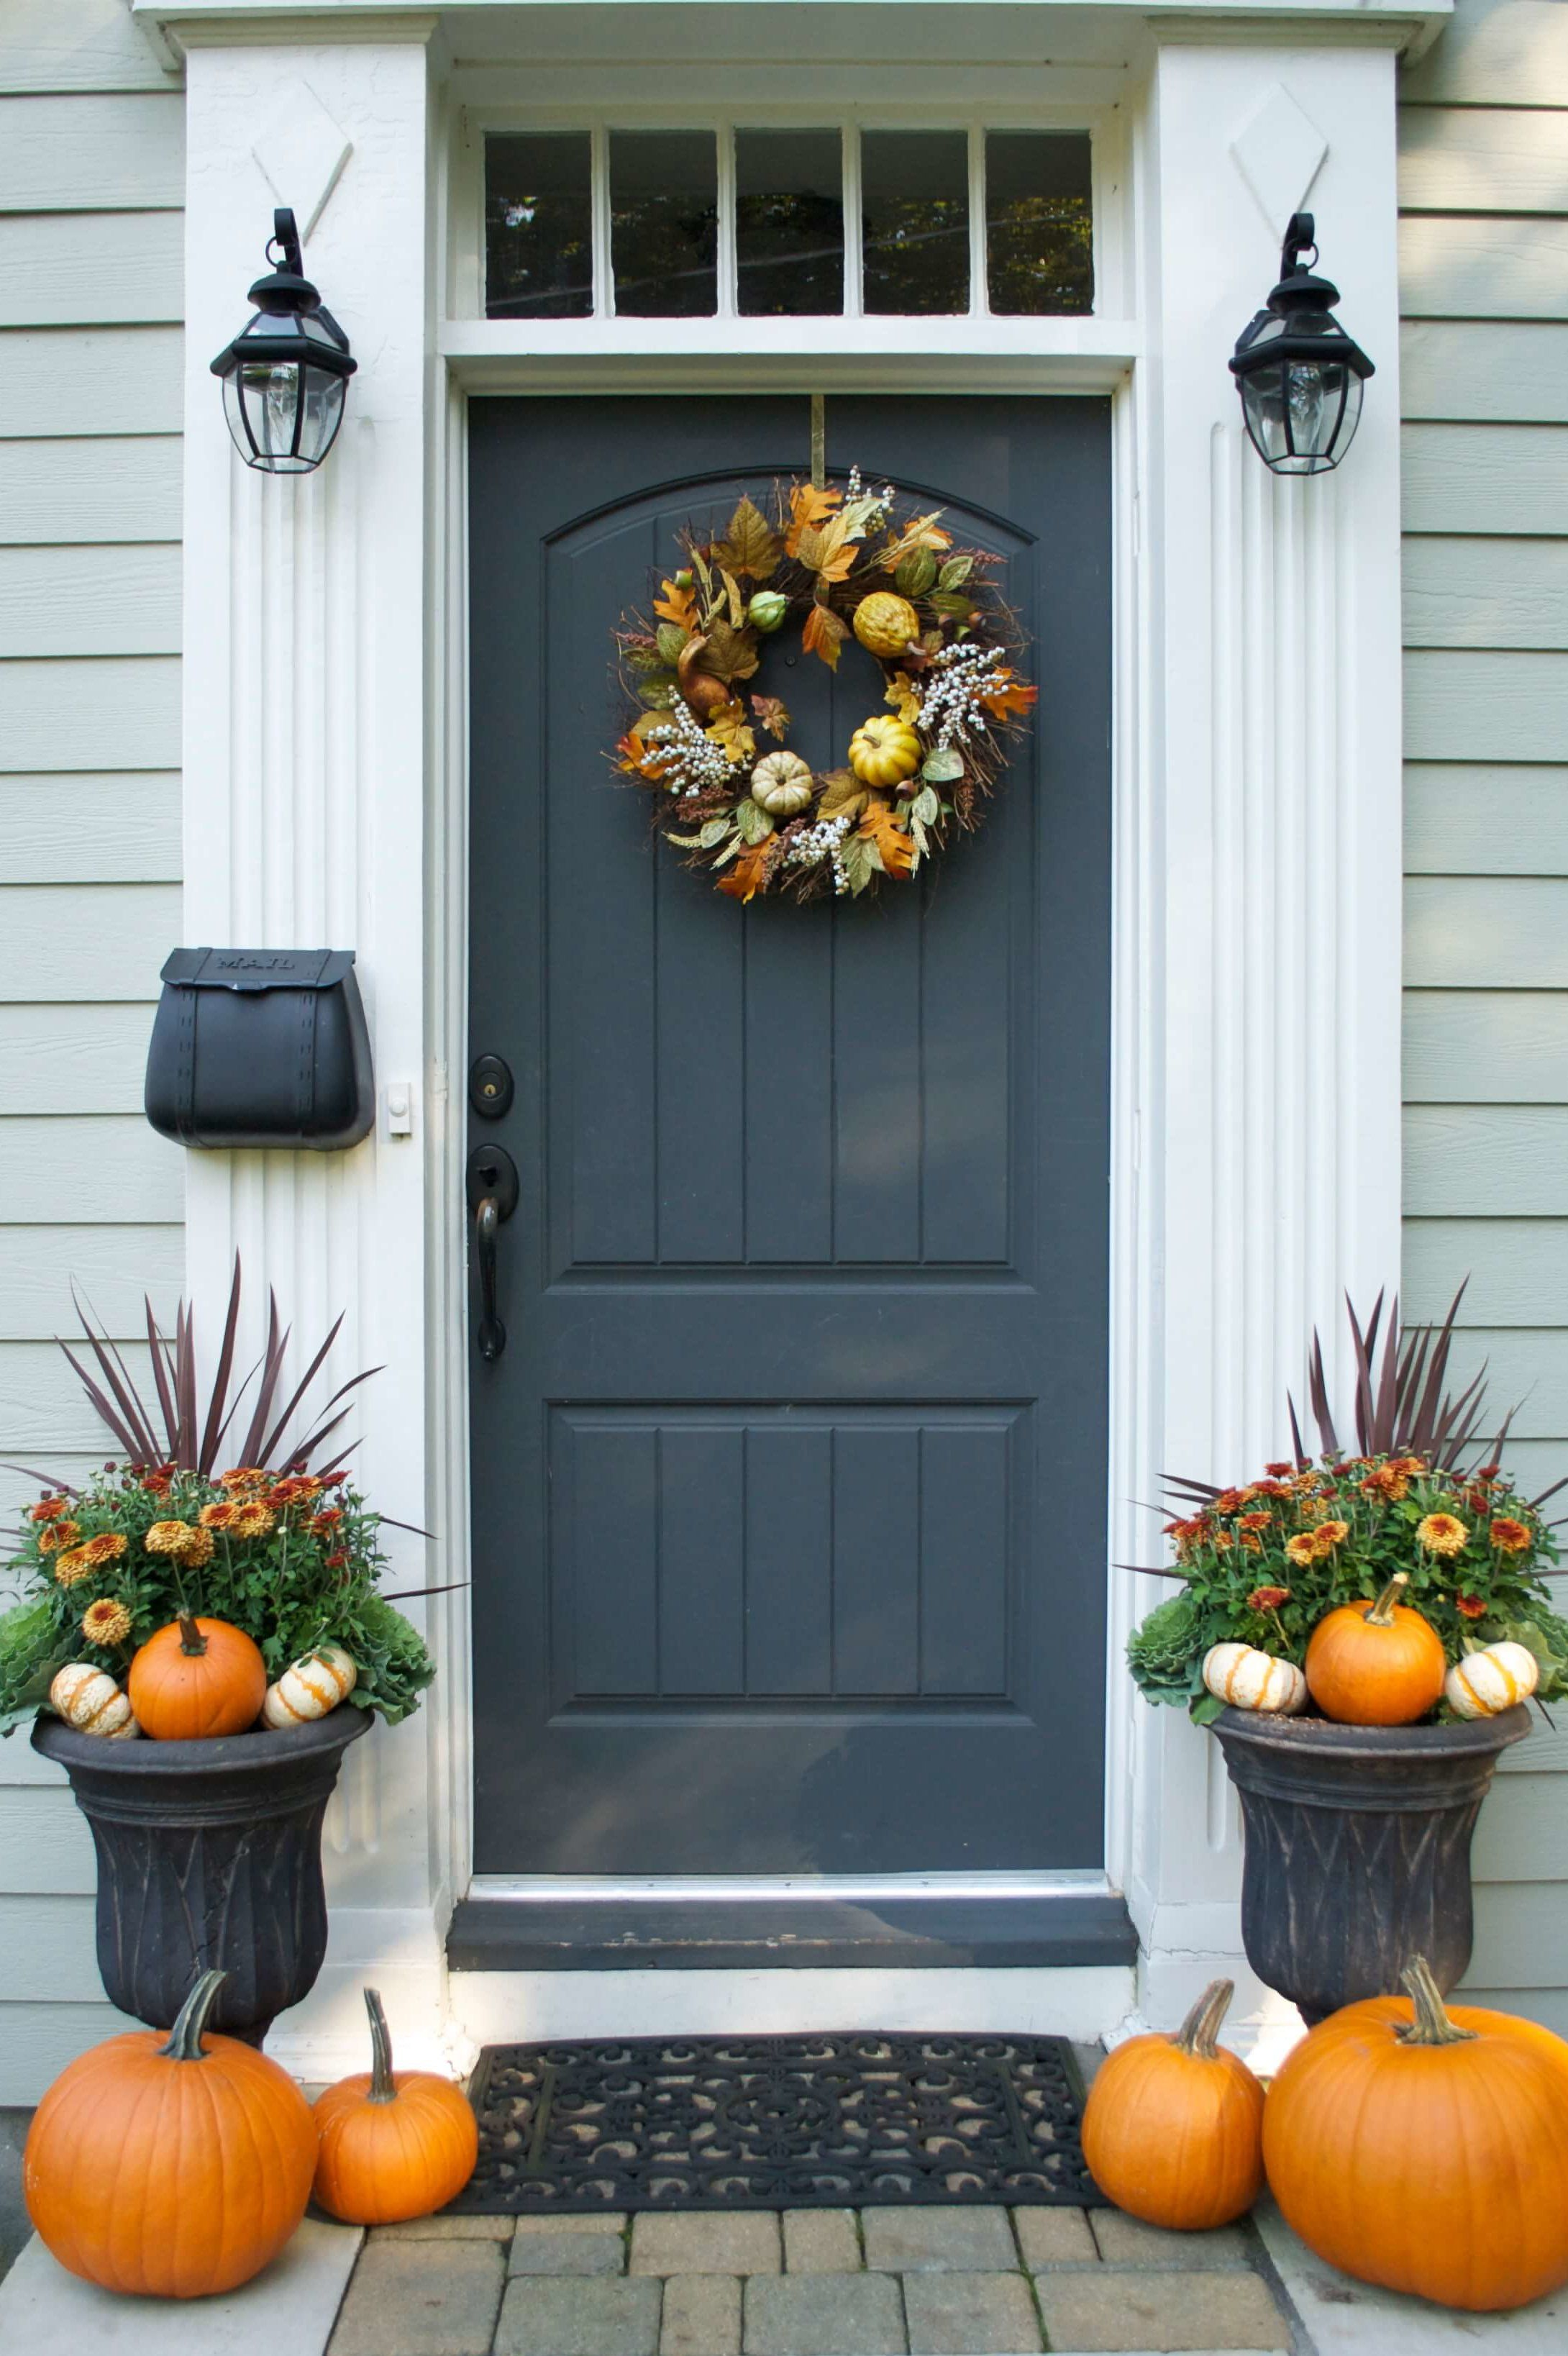 4 Chic Fall Decor Ideas Decorating, Doors and Porch - Front Door Halloween Decoration Ideas